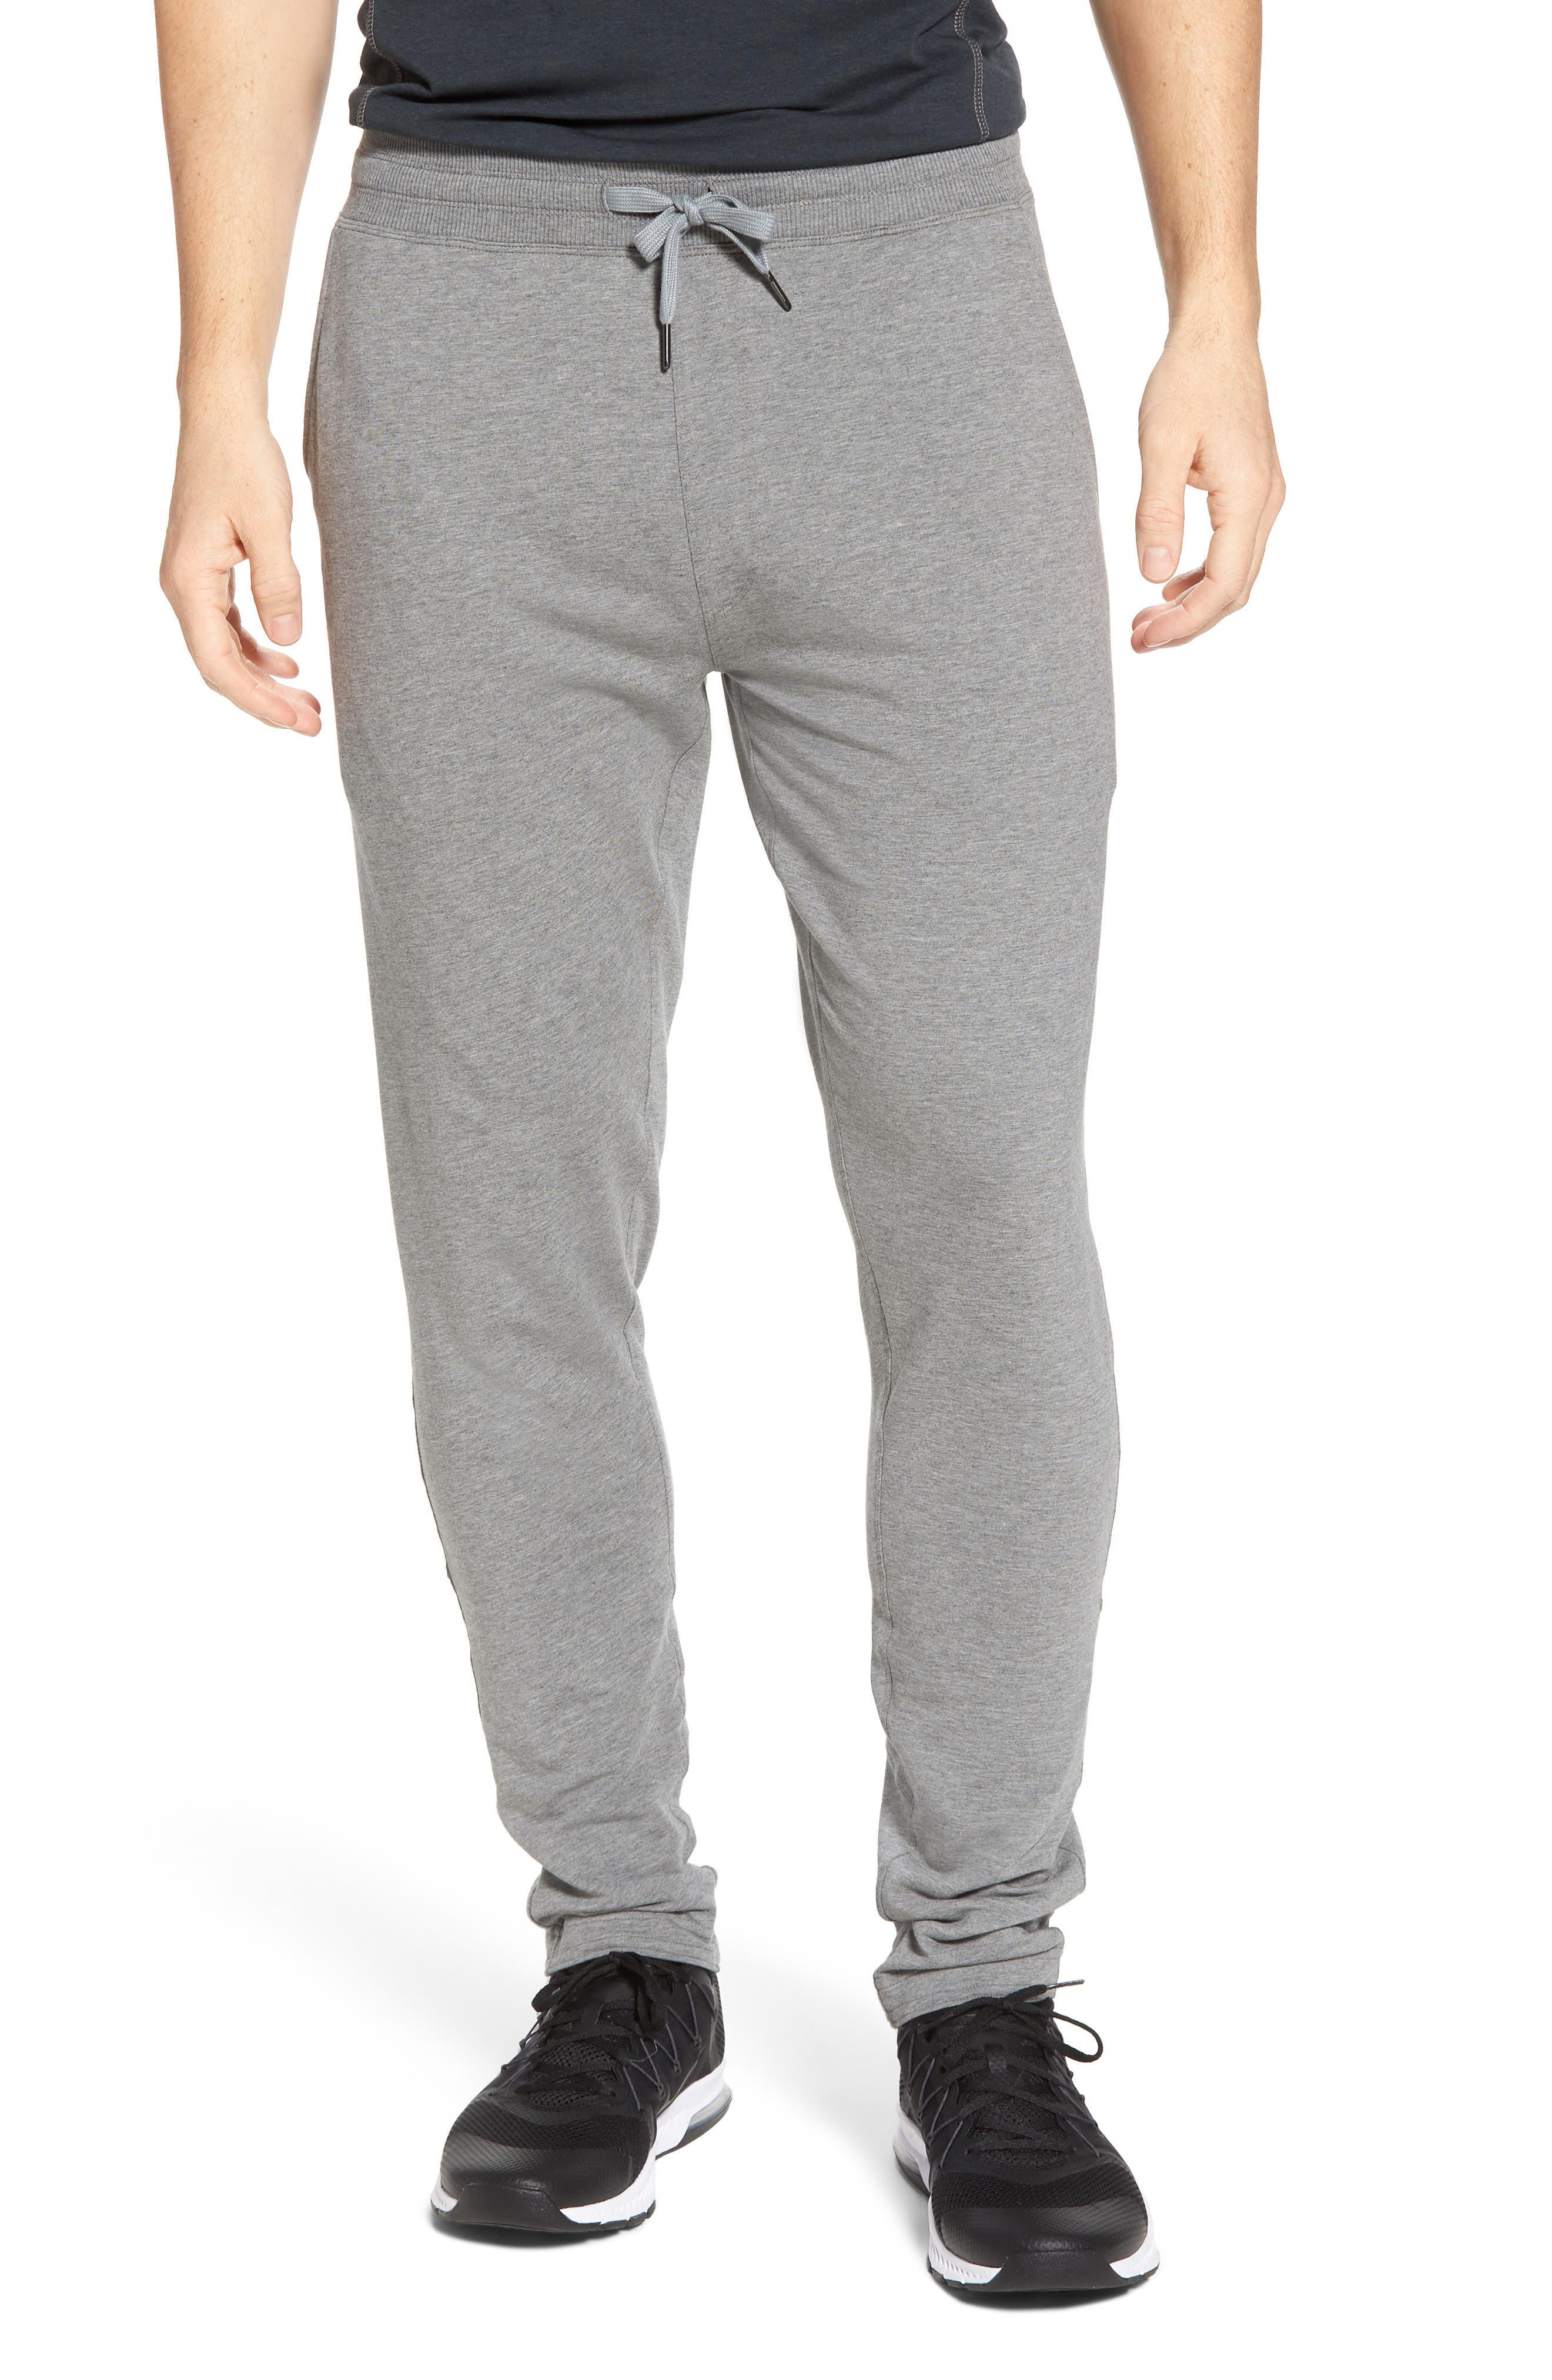 Legacy Lounge Pants,                             Main thumbnail 1, color,                             059